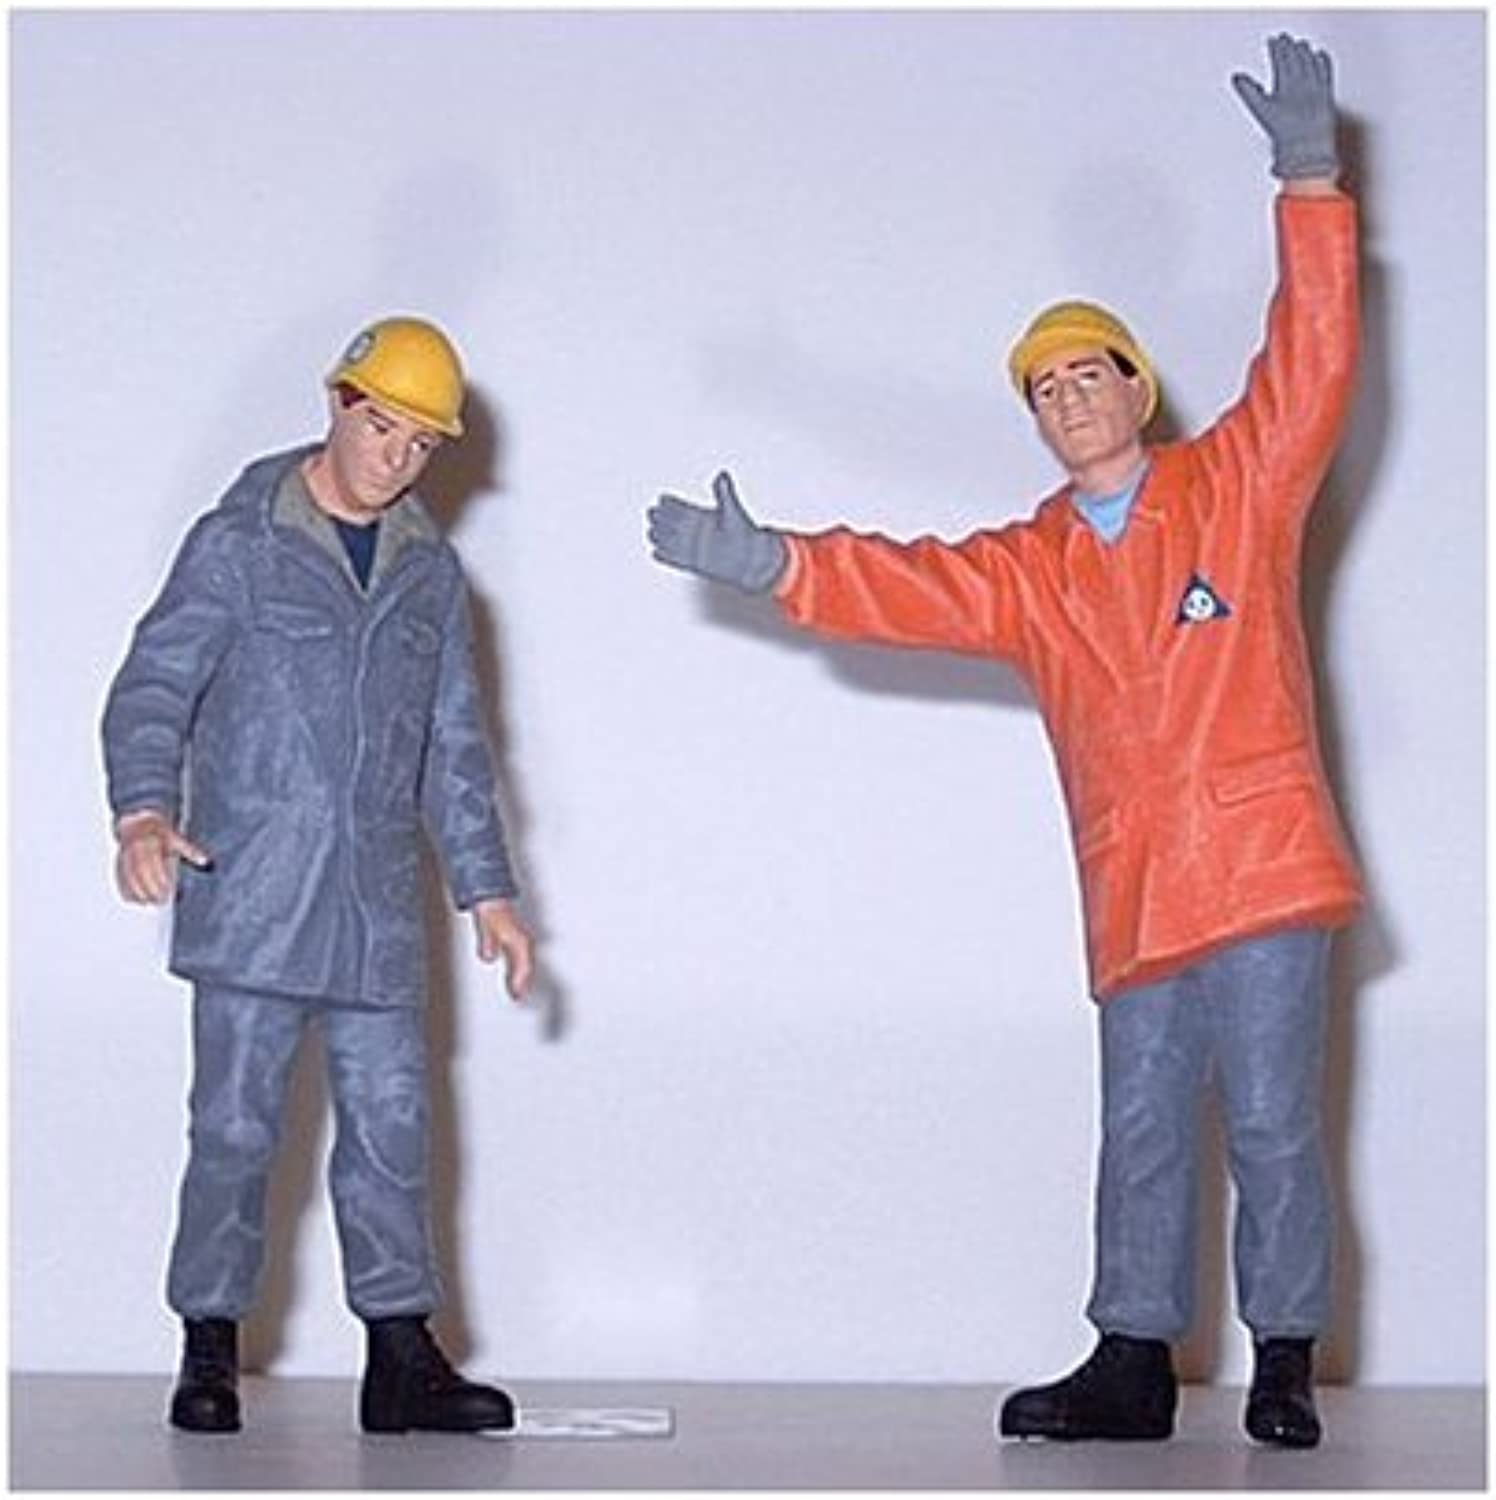 FEDERAL TECHNICAL WORKERS - PREISER G SCALE MODEL TRAIN FIGURES 45016